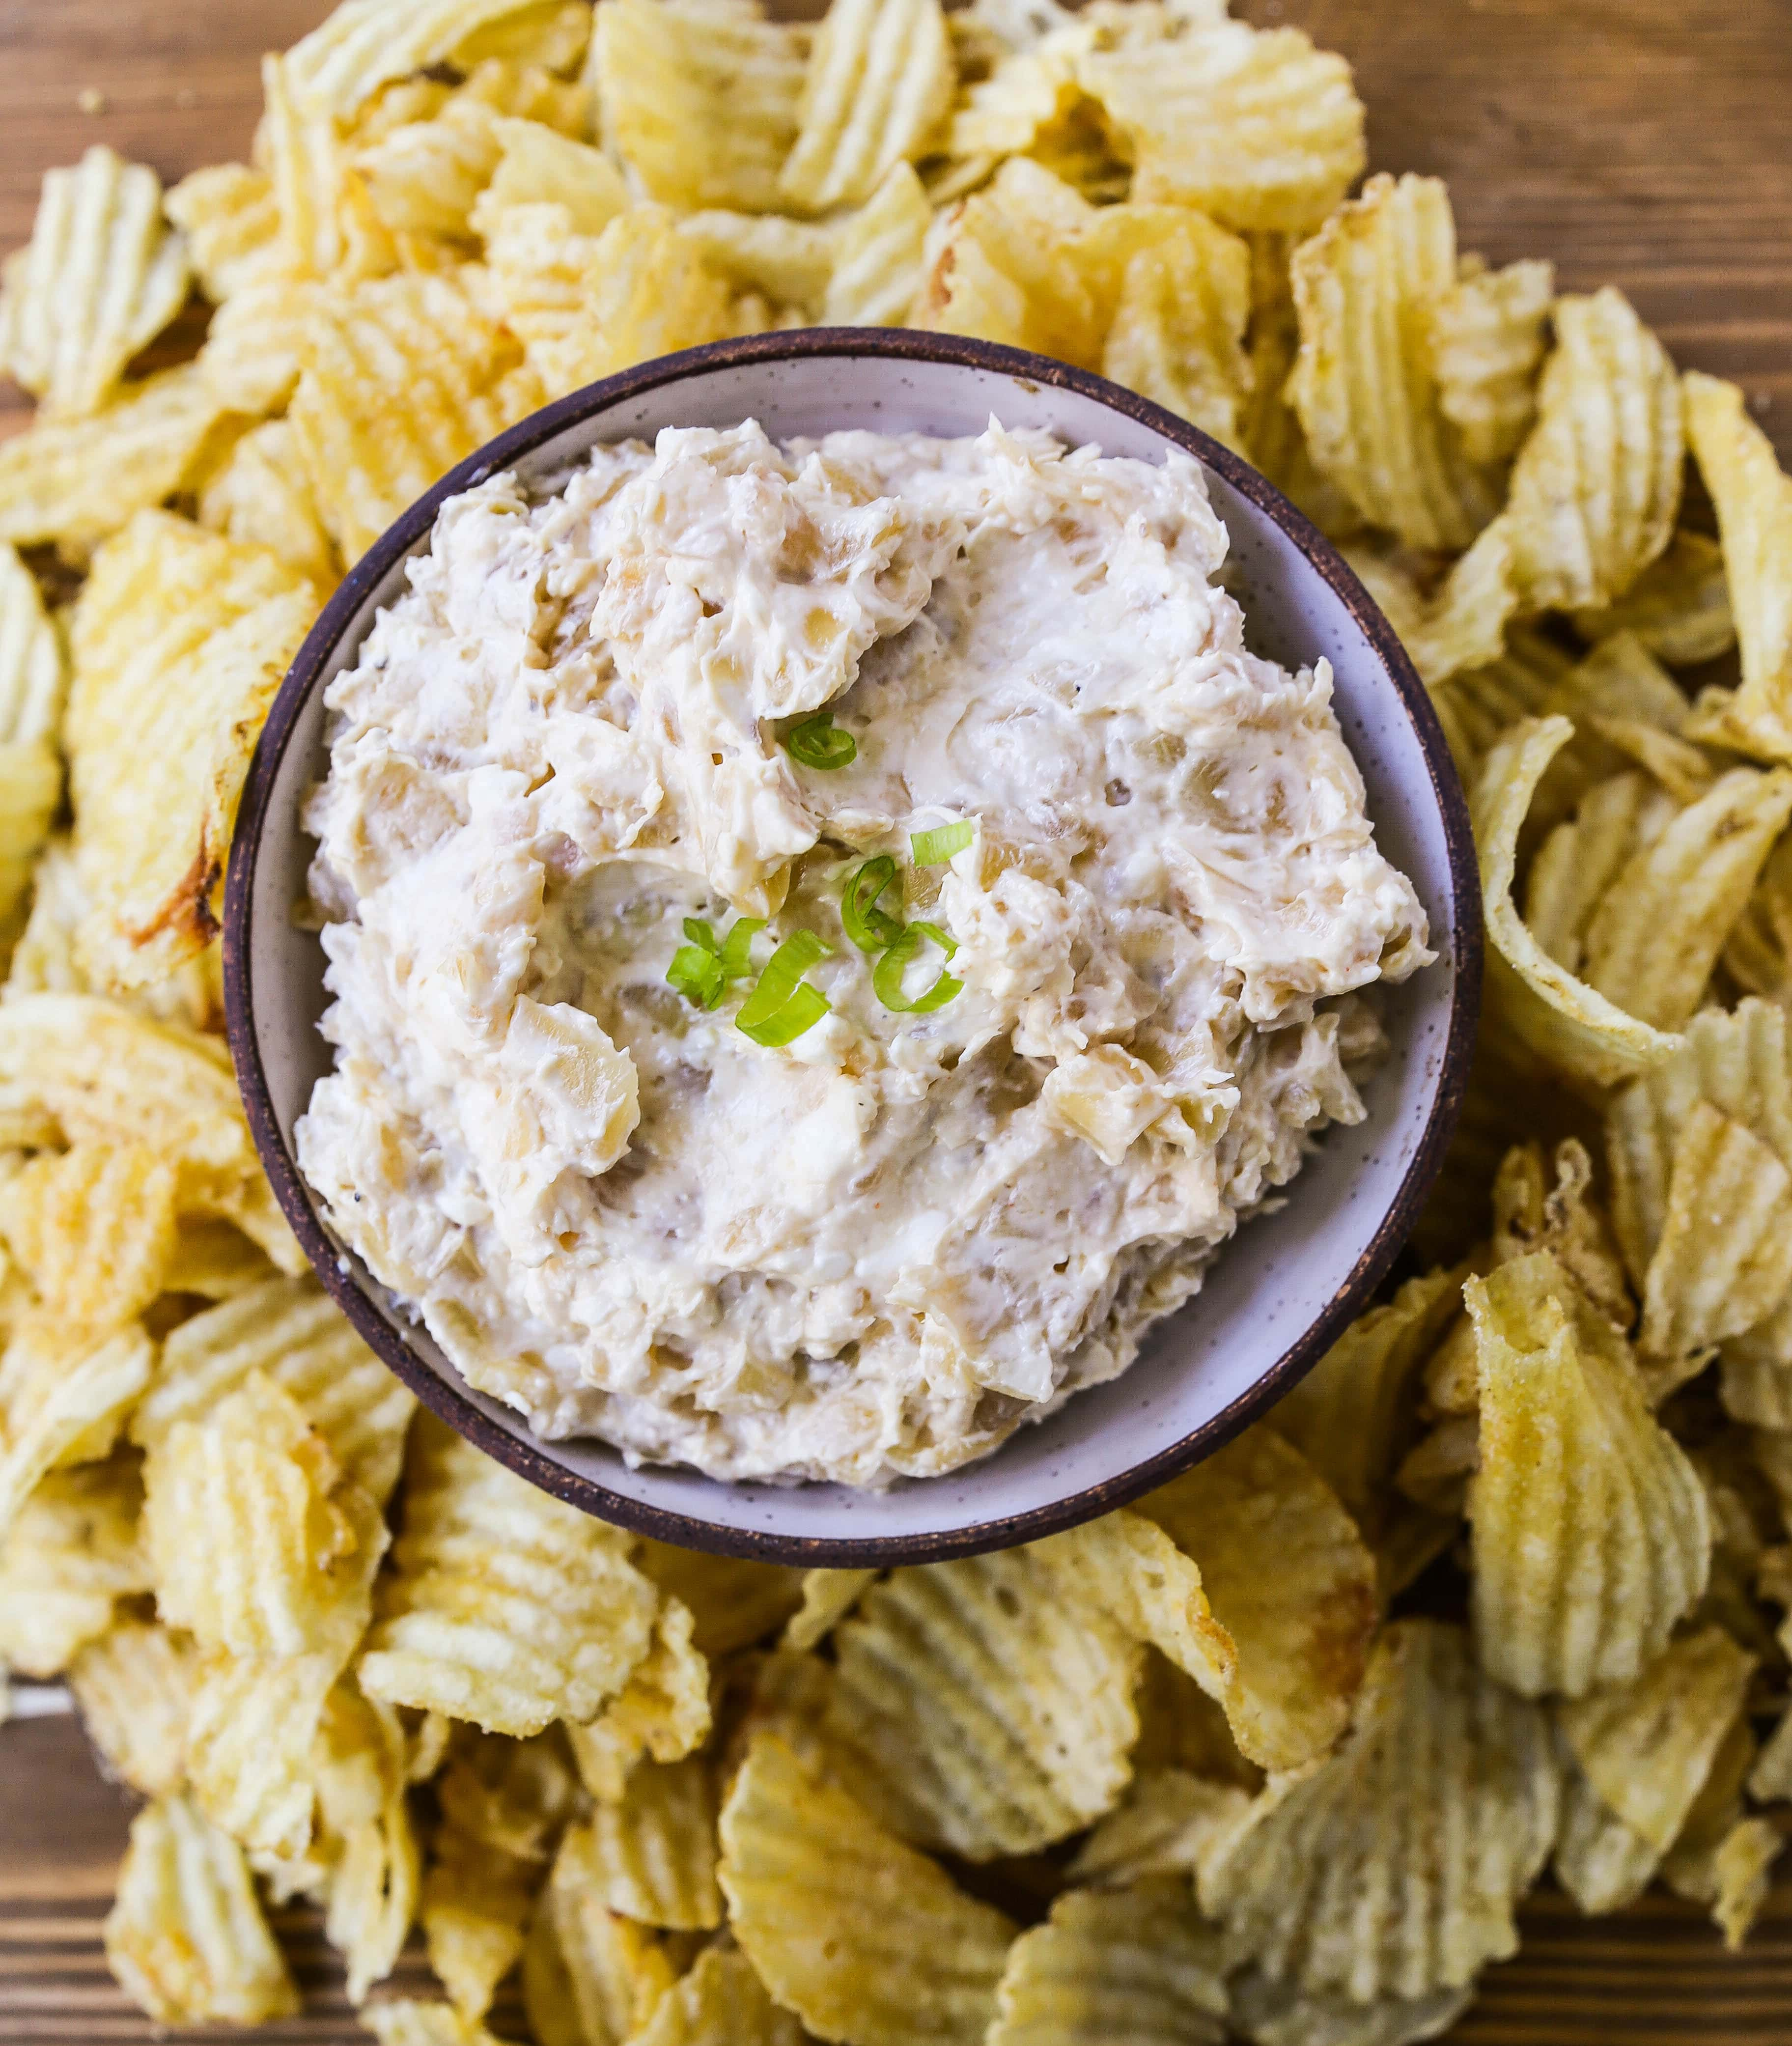 French Onion Dip Recipe The best homemade French onion dip made with caramelized onions, sour cream, mayo, and cream cheese. The perfect French onion dip recipe! www.modernhoney.com #frenchoniondip #frenchonion #dip #diprecipe #dips #appetizer